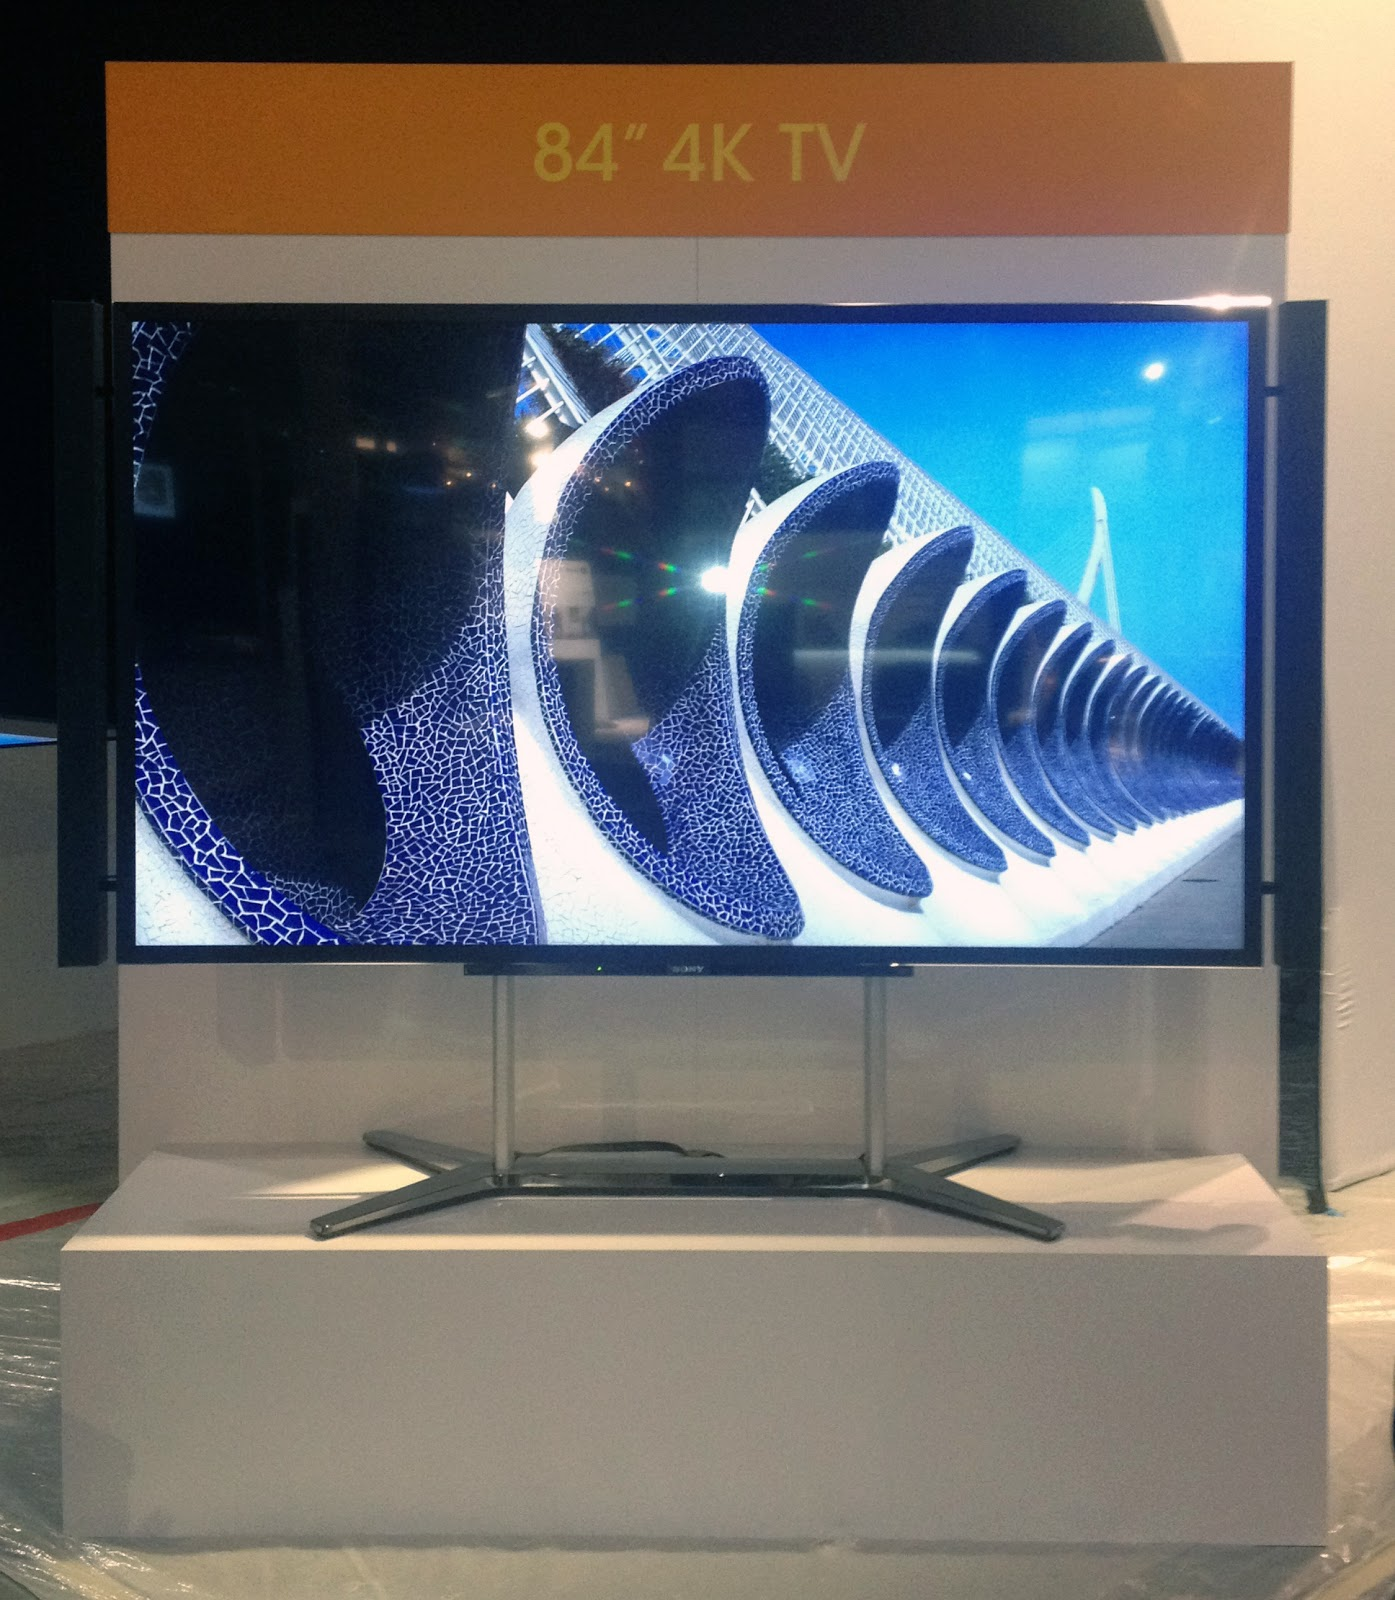 Sony XBR-84X900 4K Ultra HD TV